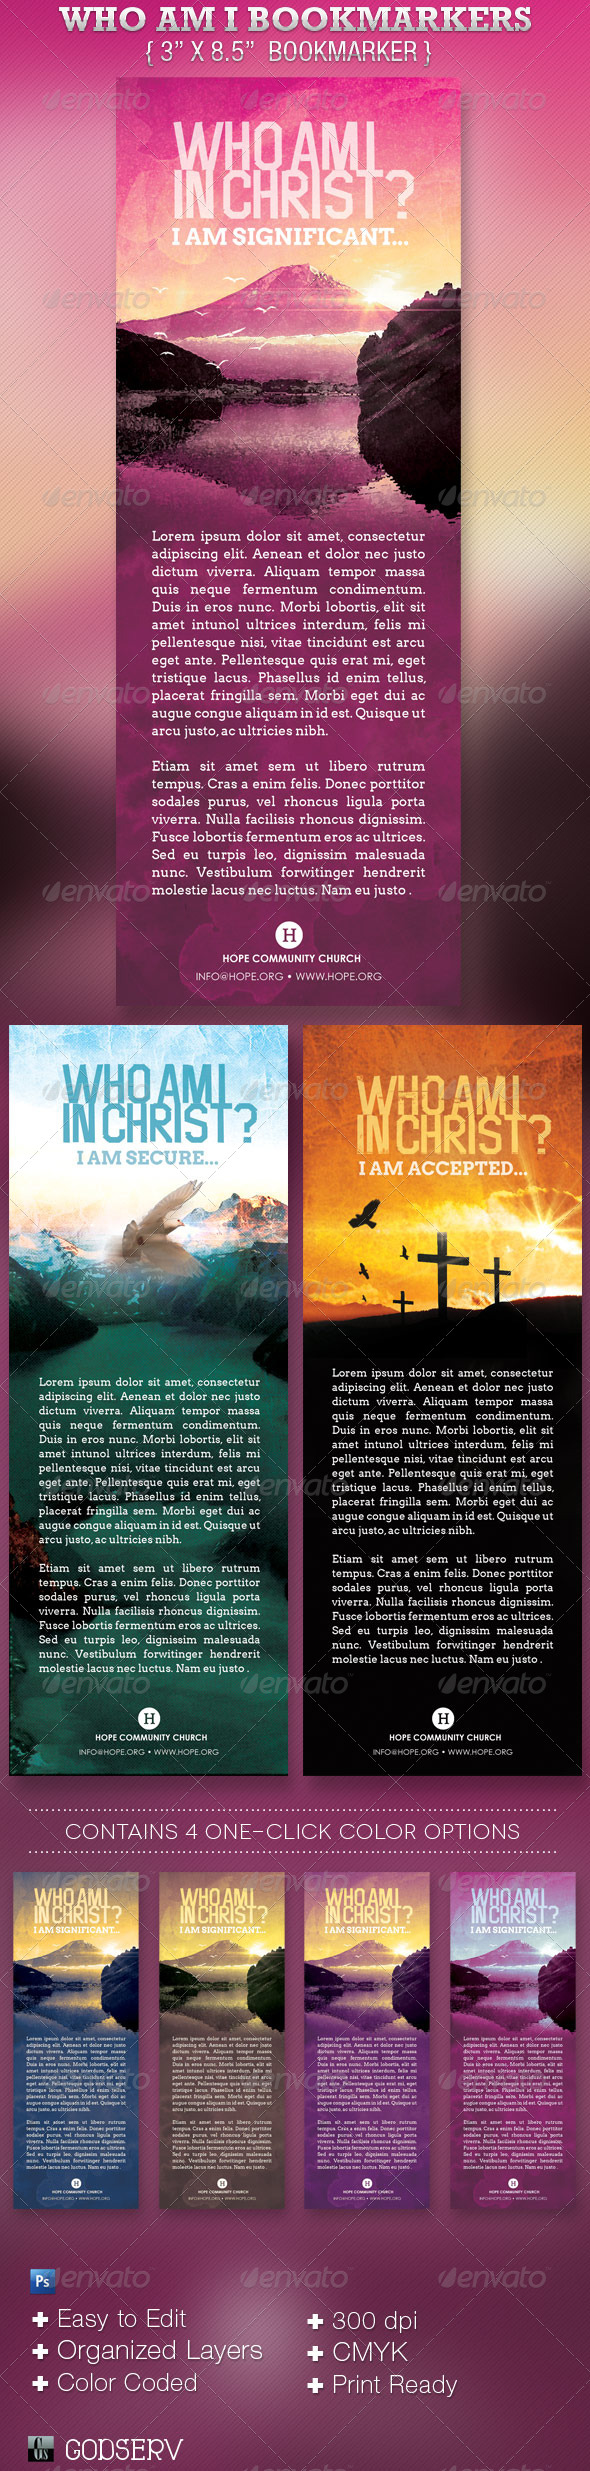 Who Am I In Christ Bookmarker Template - Miscellaneous Print Templates